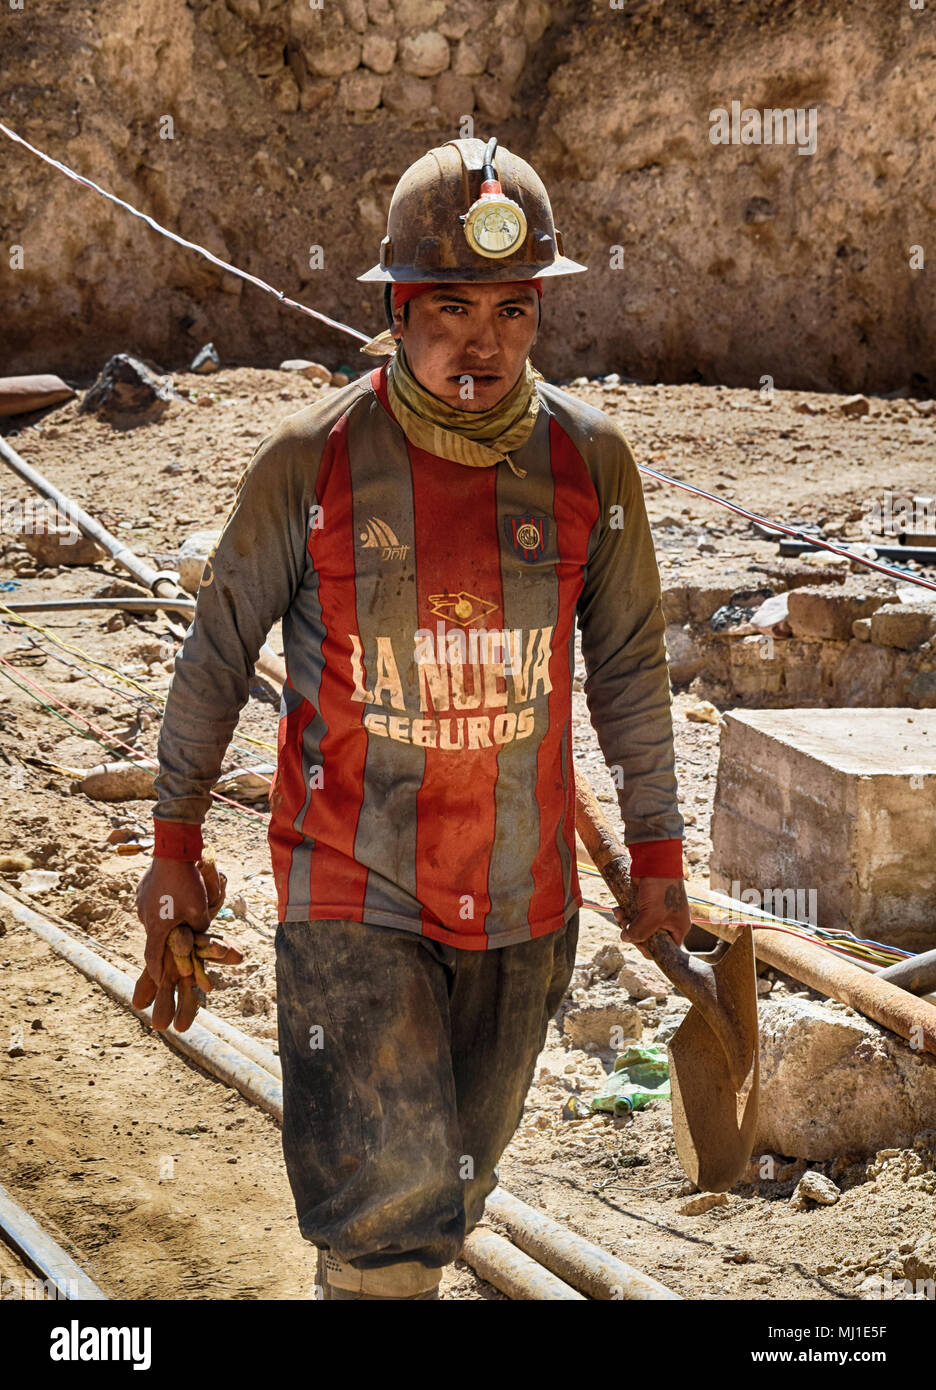 Miner at the mines of Potosi (Bolivia) - Stock Image